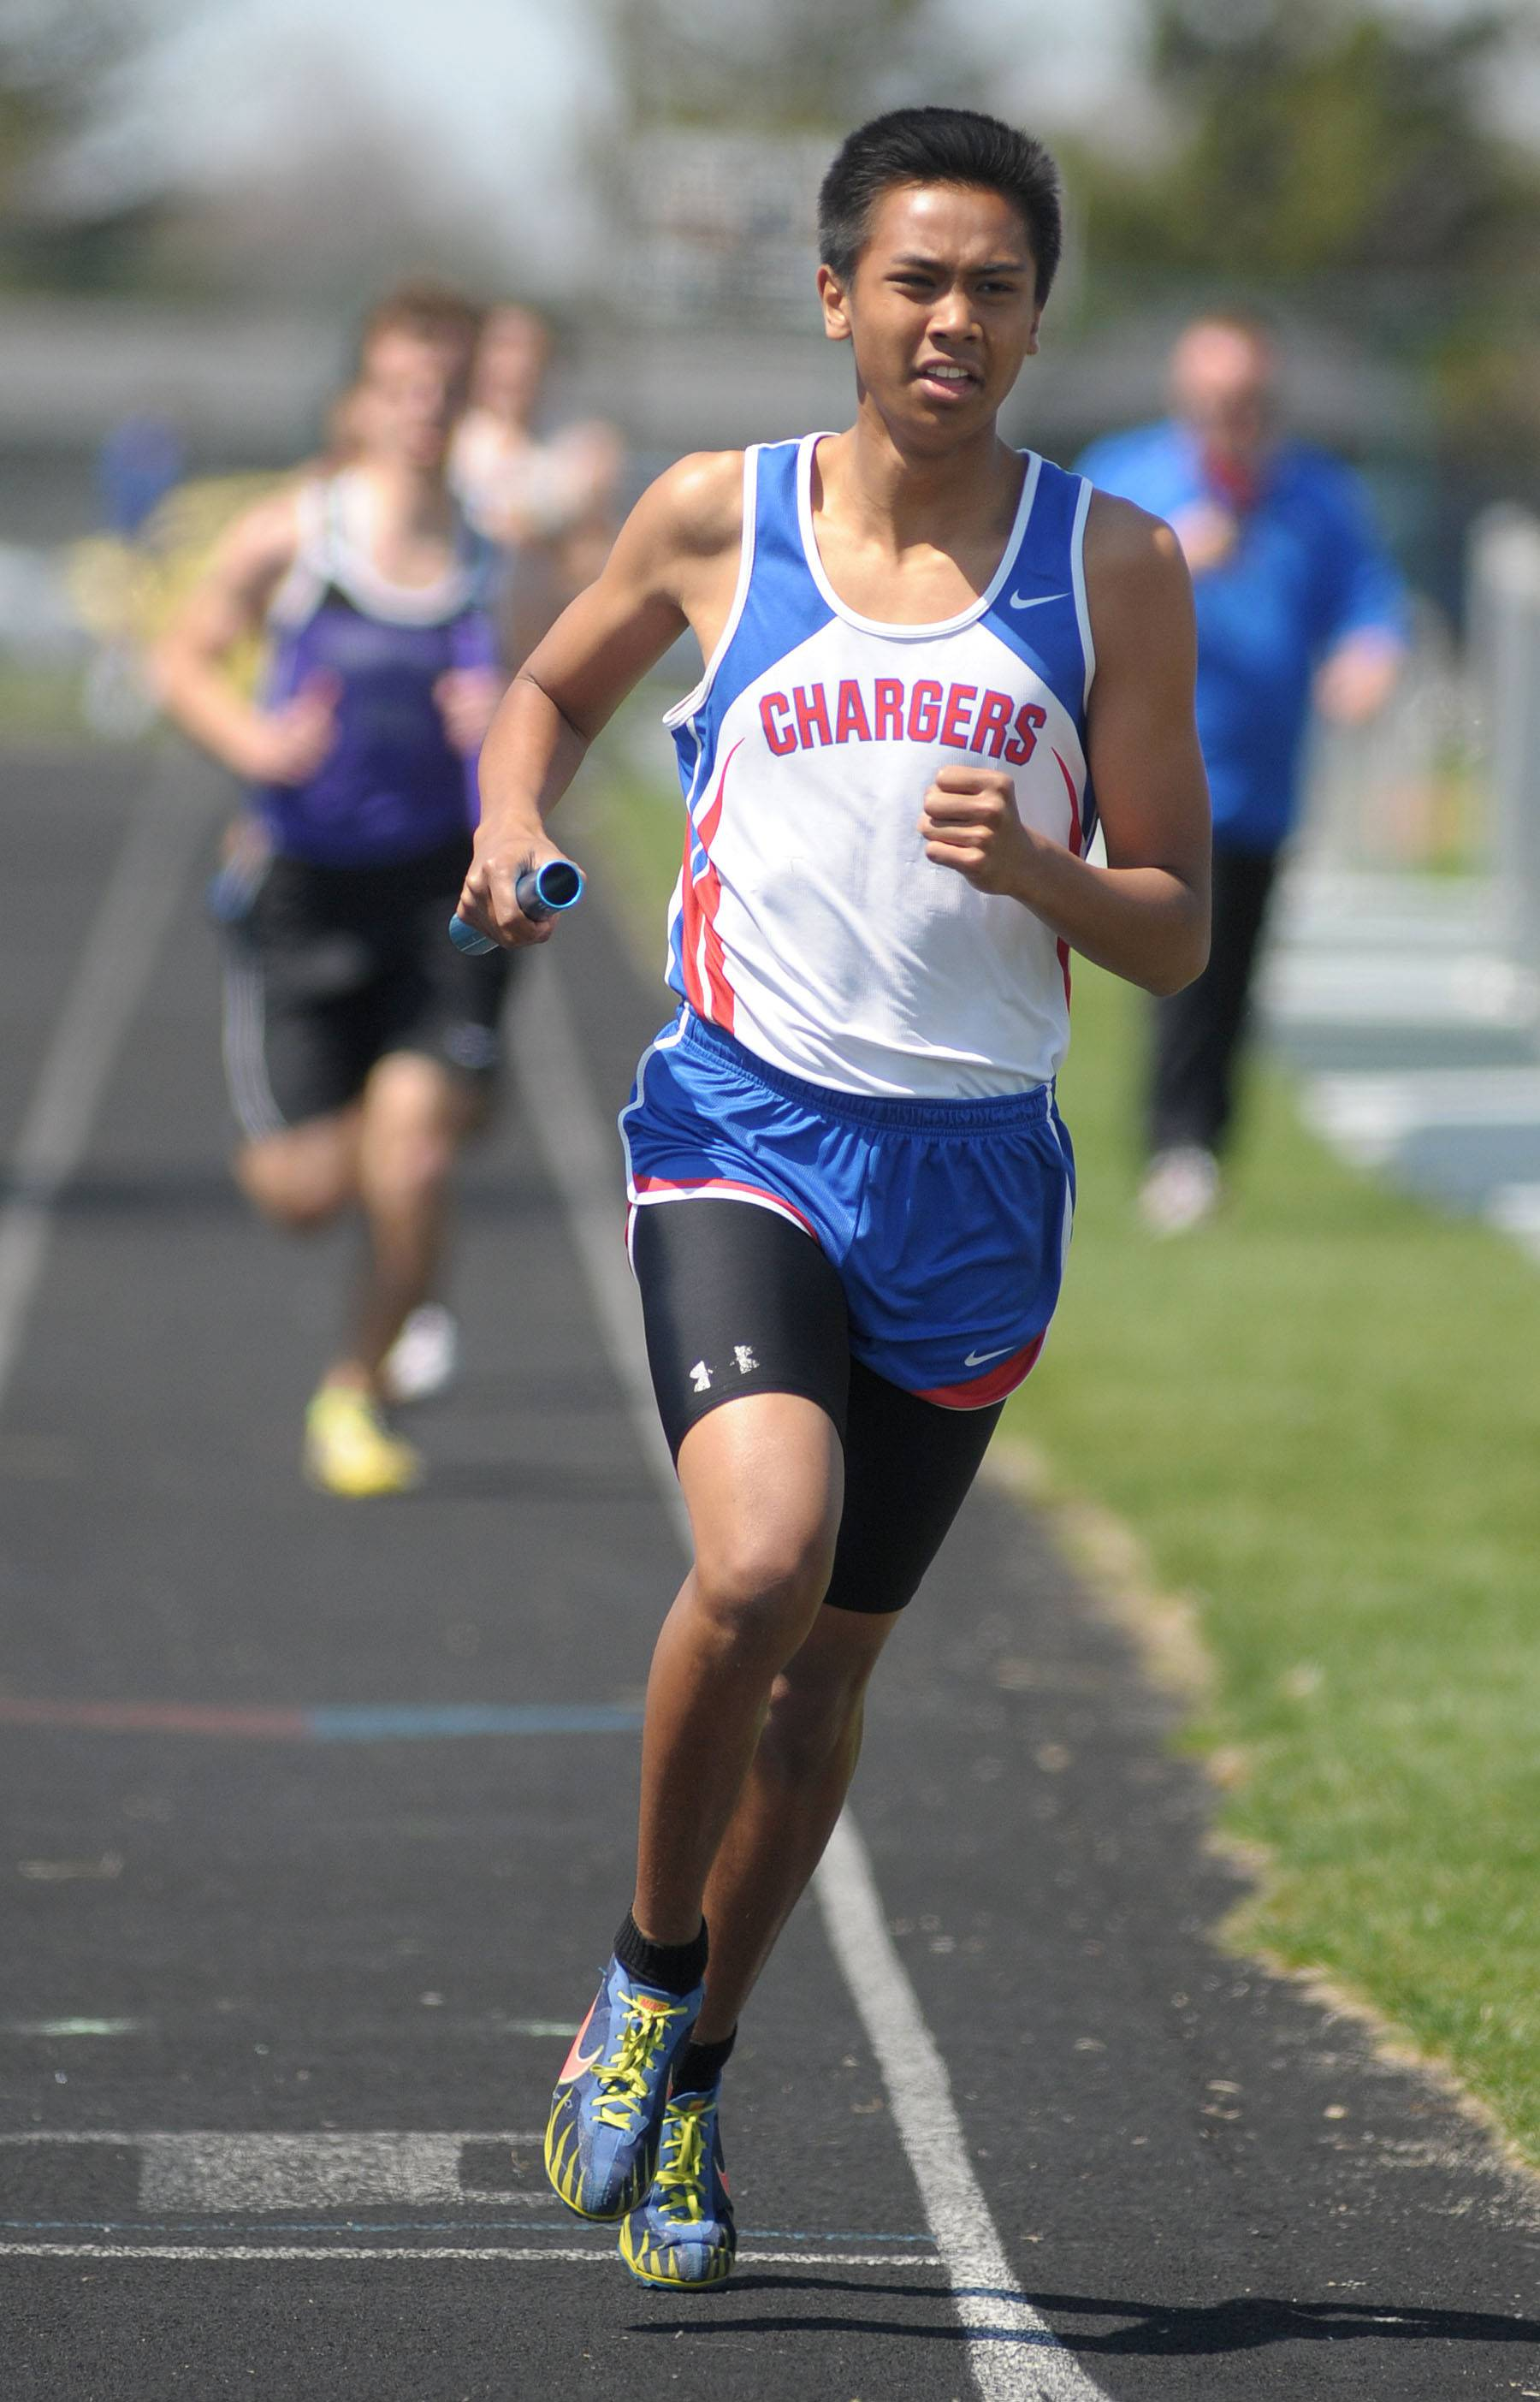 Dundee-Crown's Sam Parreno in the 4 x 800 meter relay at Kaneland's Peterson Prep Invitational on Saturday, April 26.